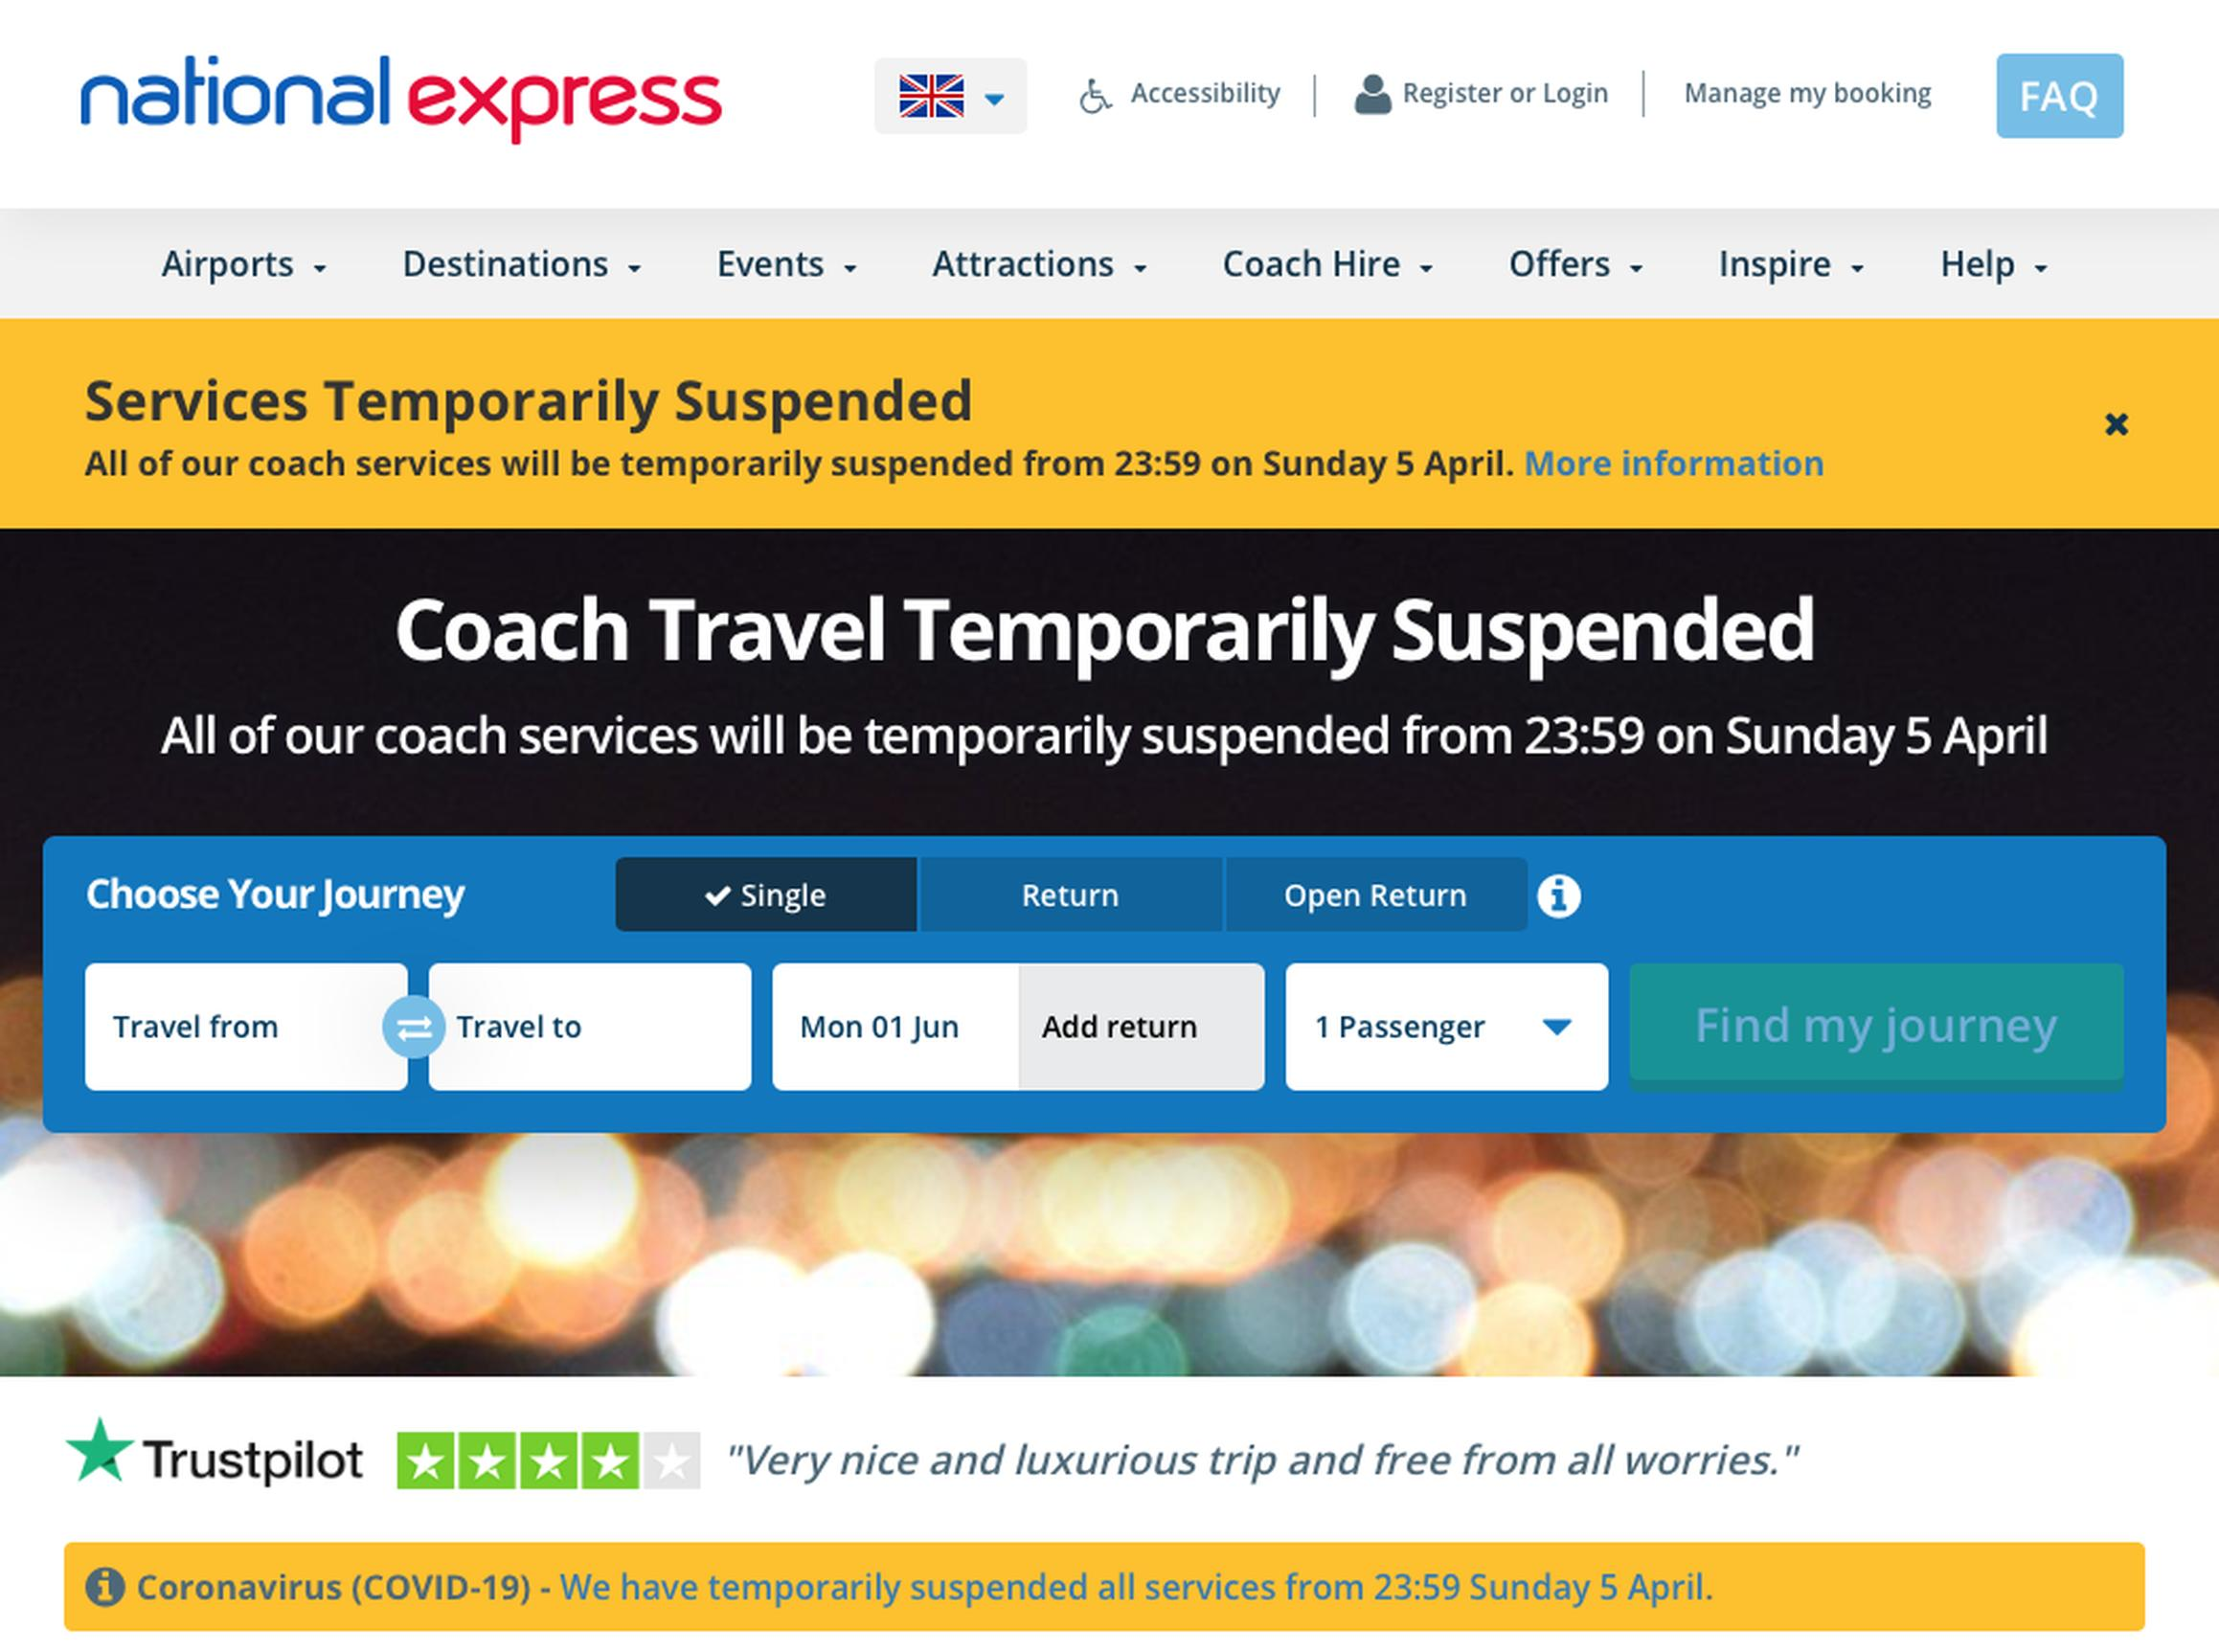 The National Express website